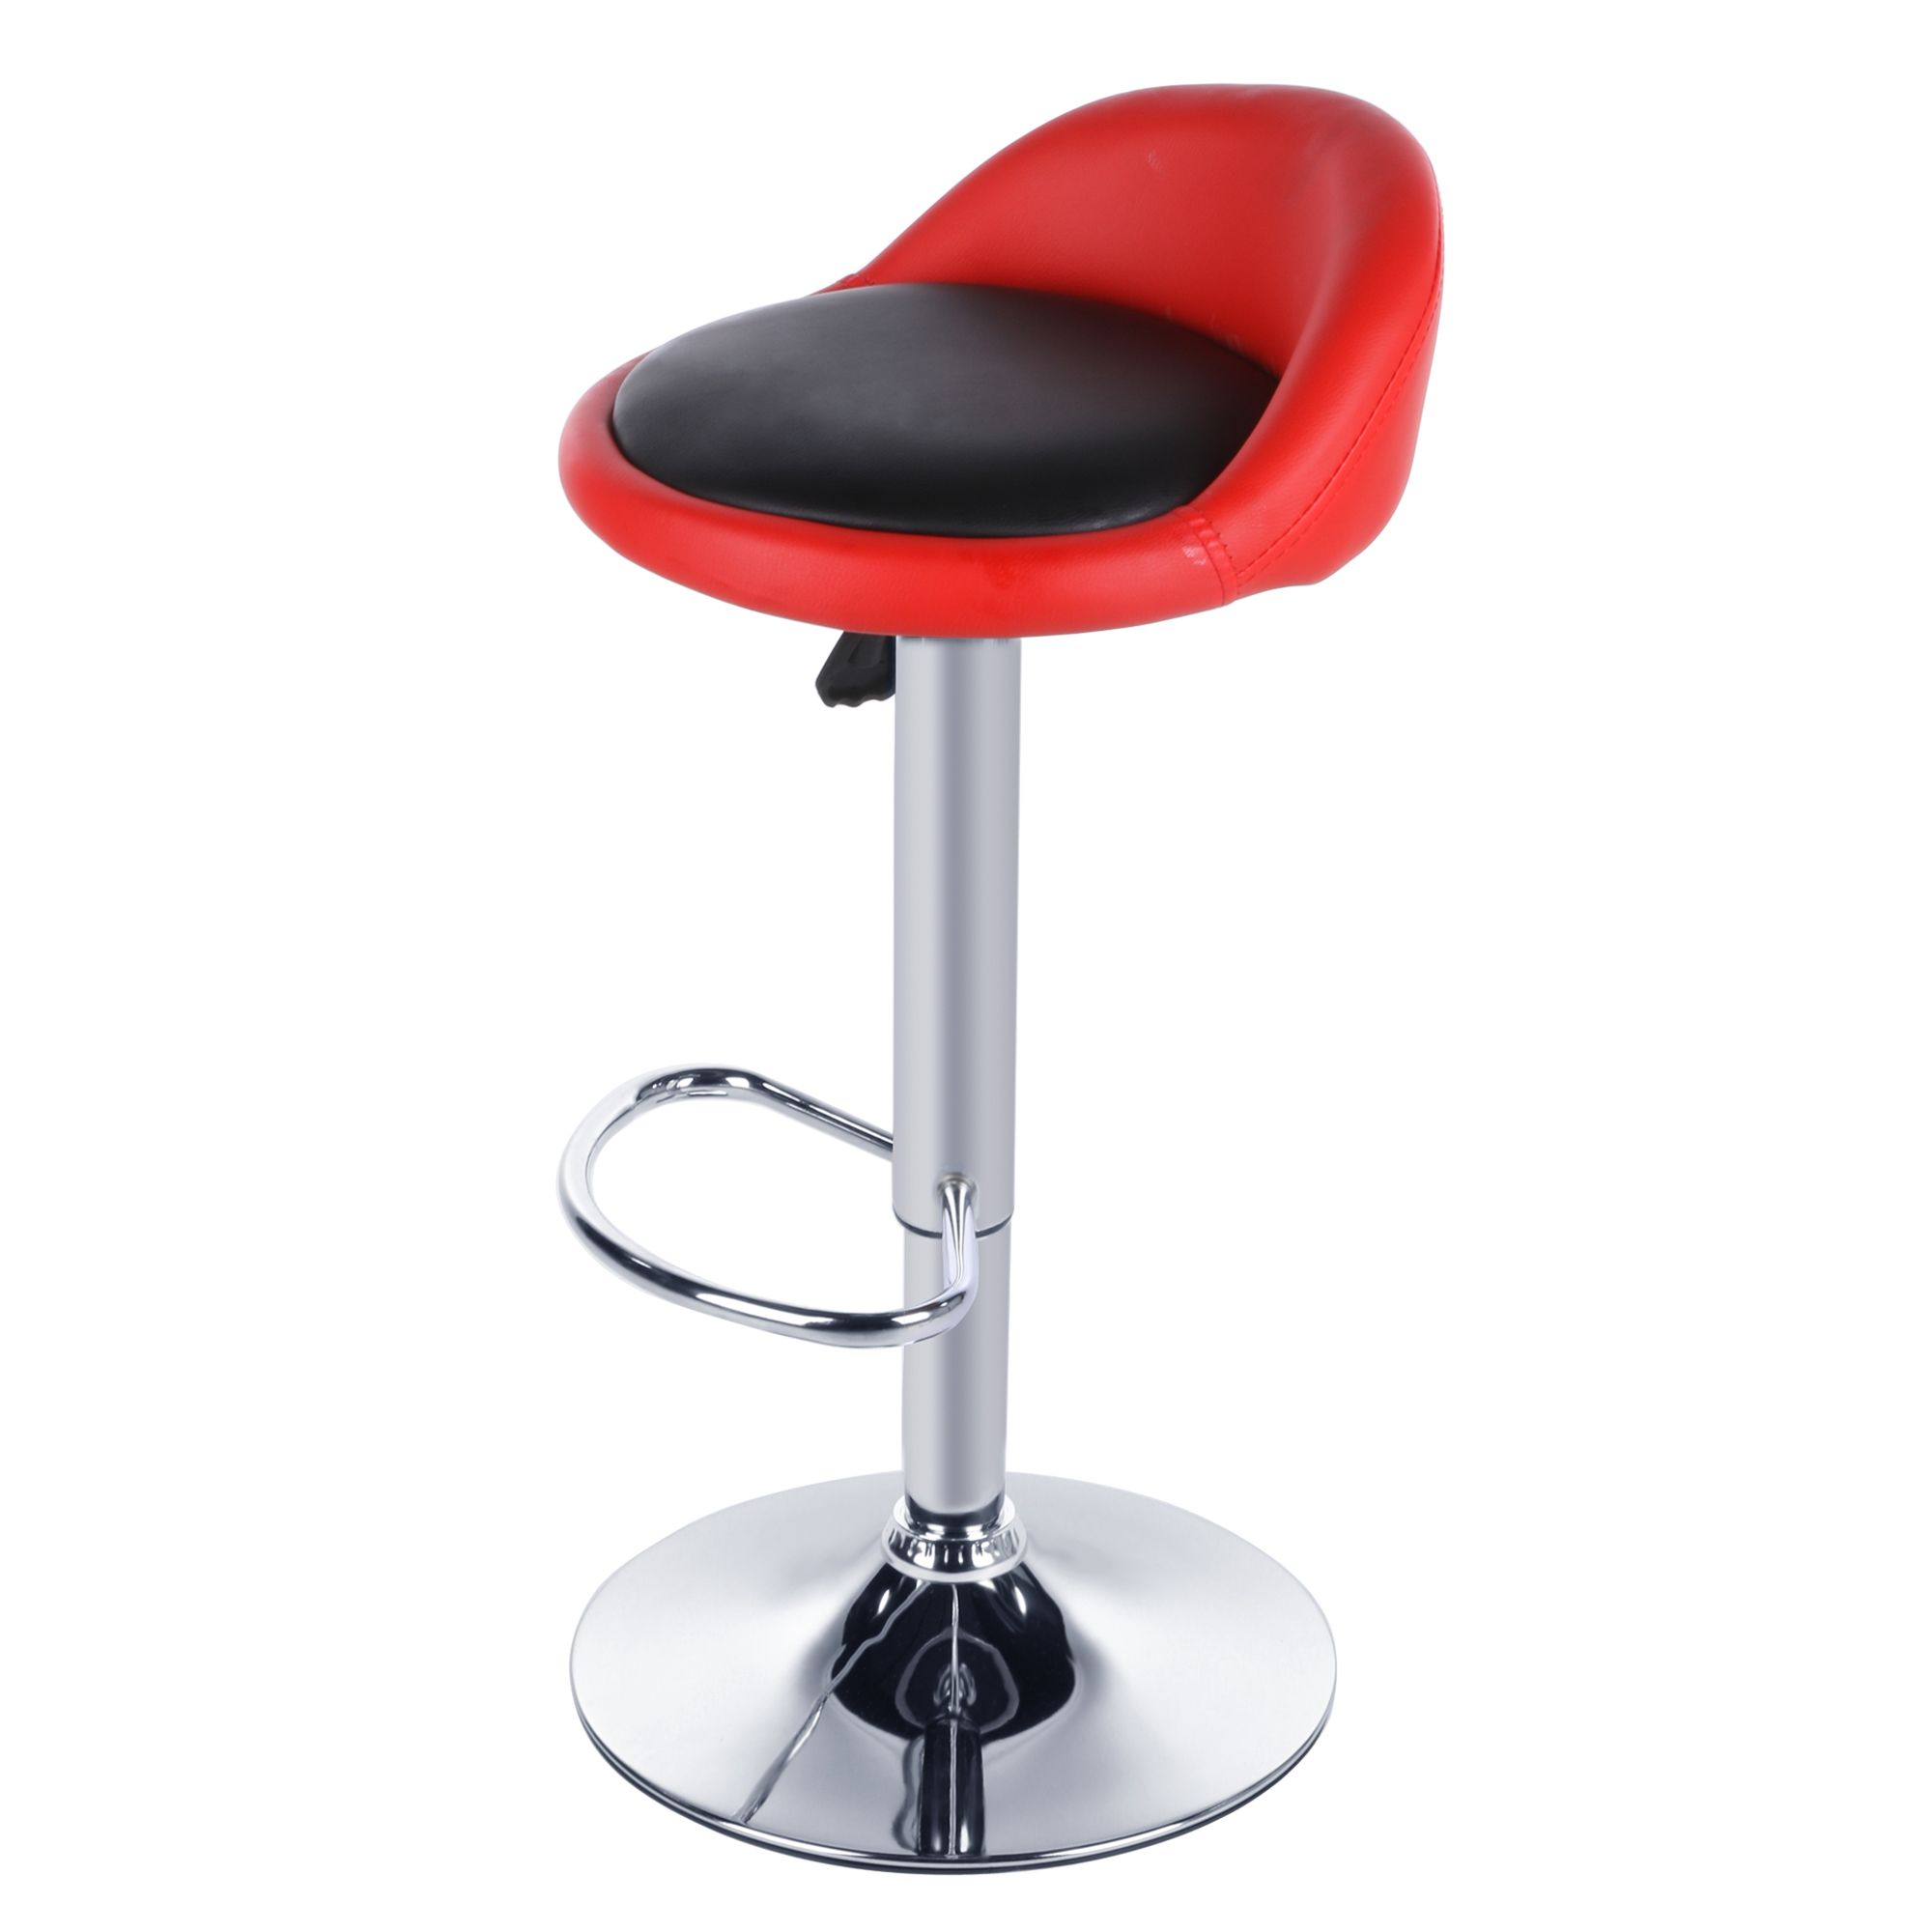 Homdox 2pcs Synthetic Leather Rotating Adjustable Height Bar Stool Chair Stainless Steel Stent 4 Colors  N1525